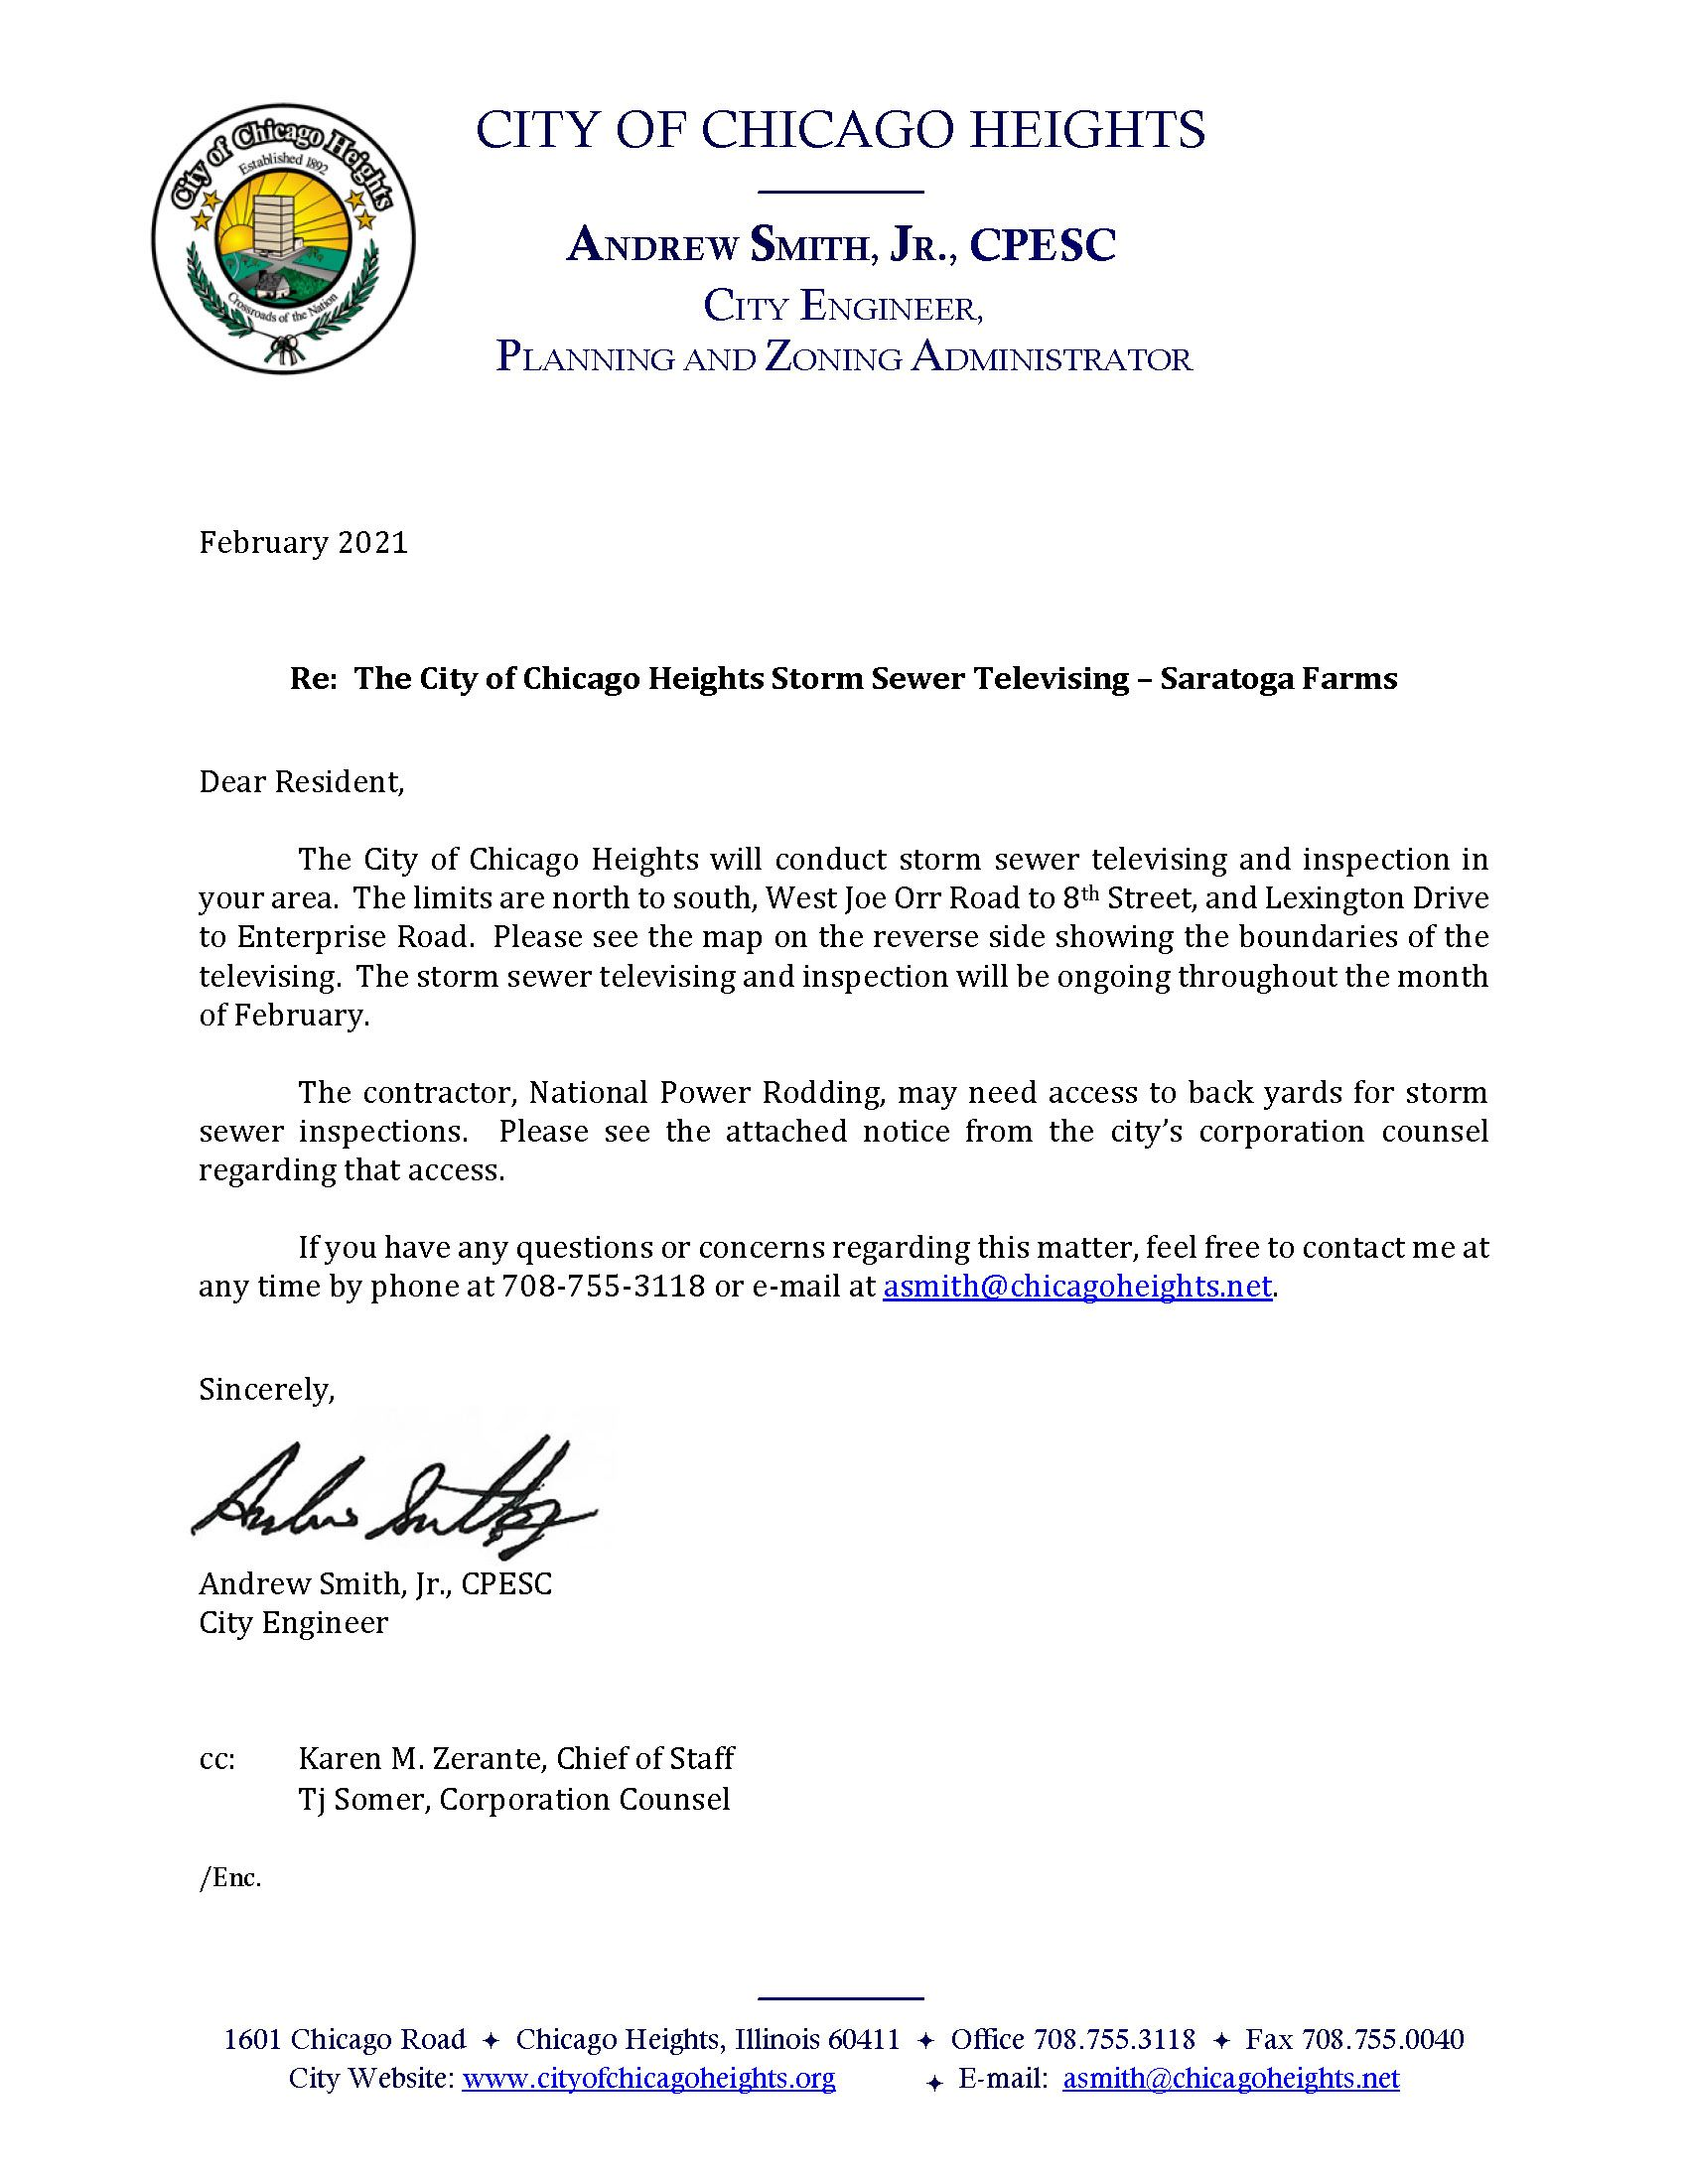 Letter of Saratoga Farms Storm Sewer Televising and Inspection February 2021